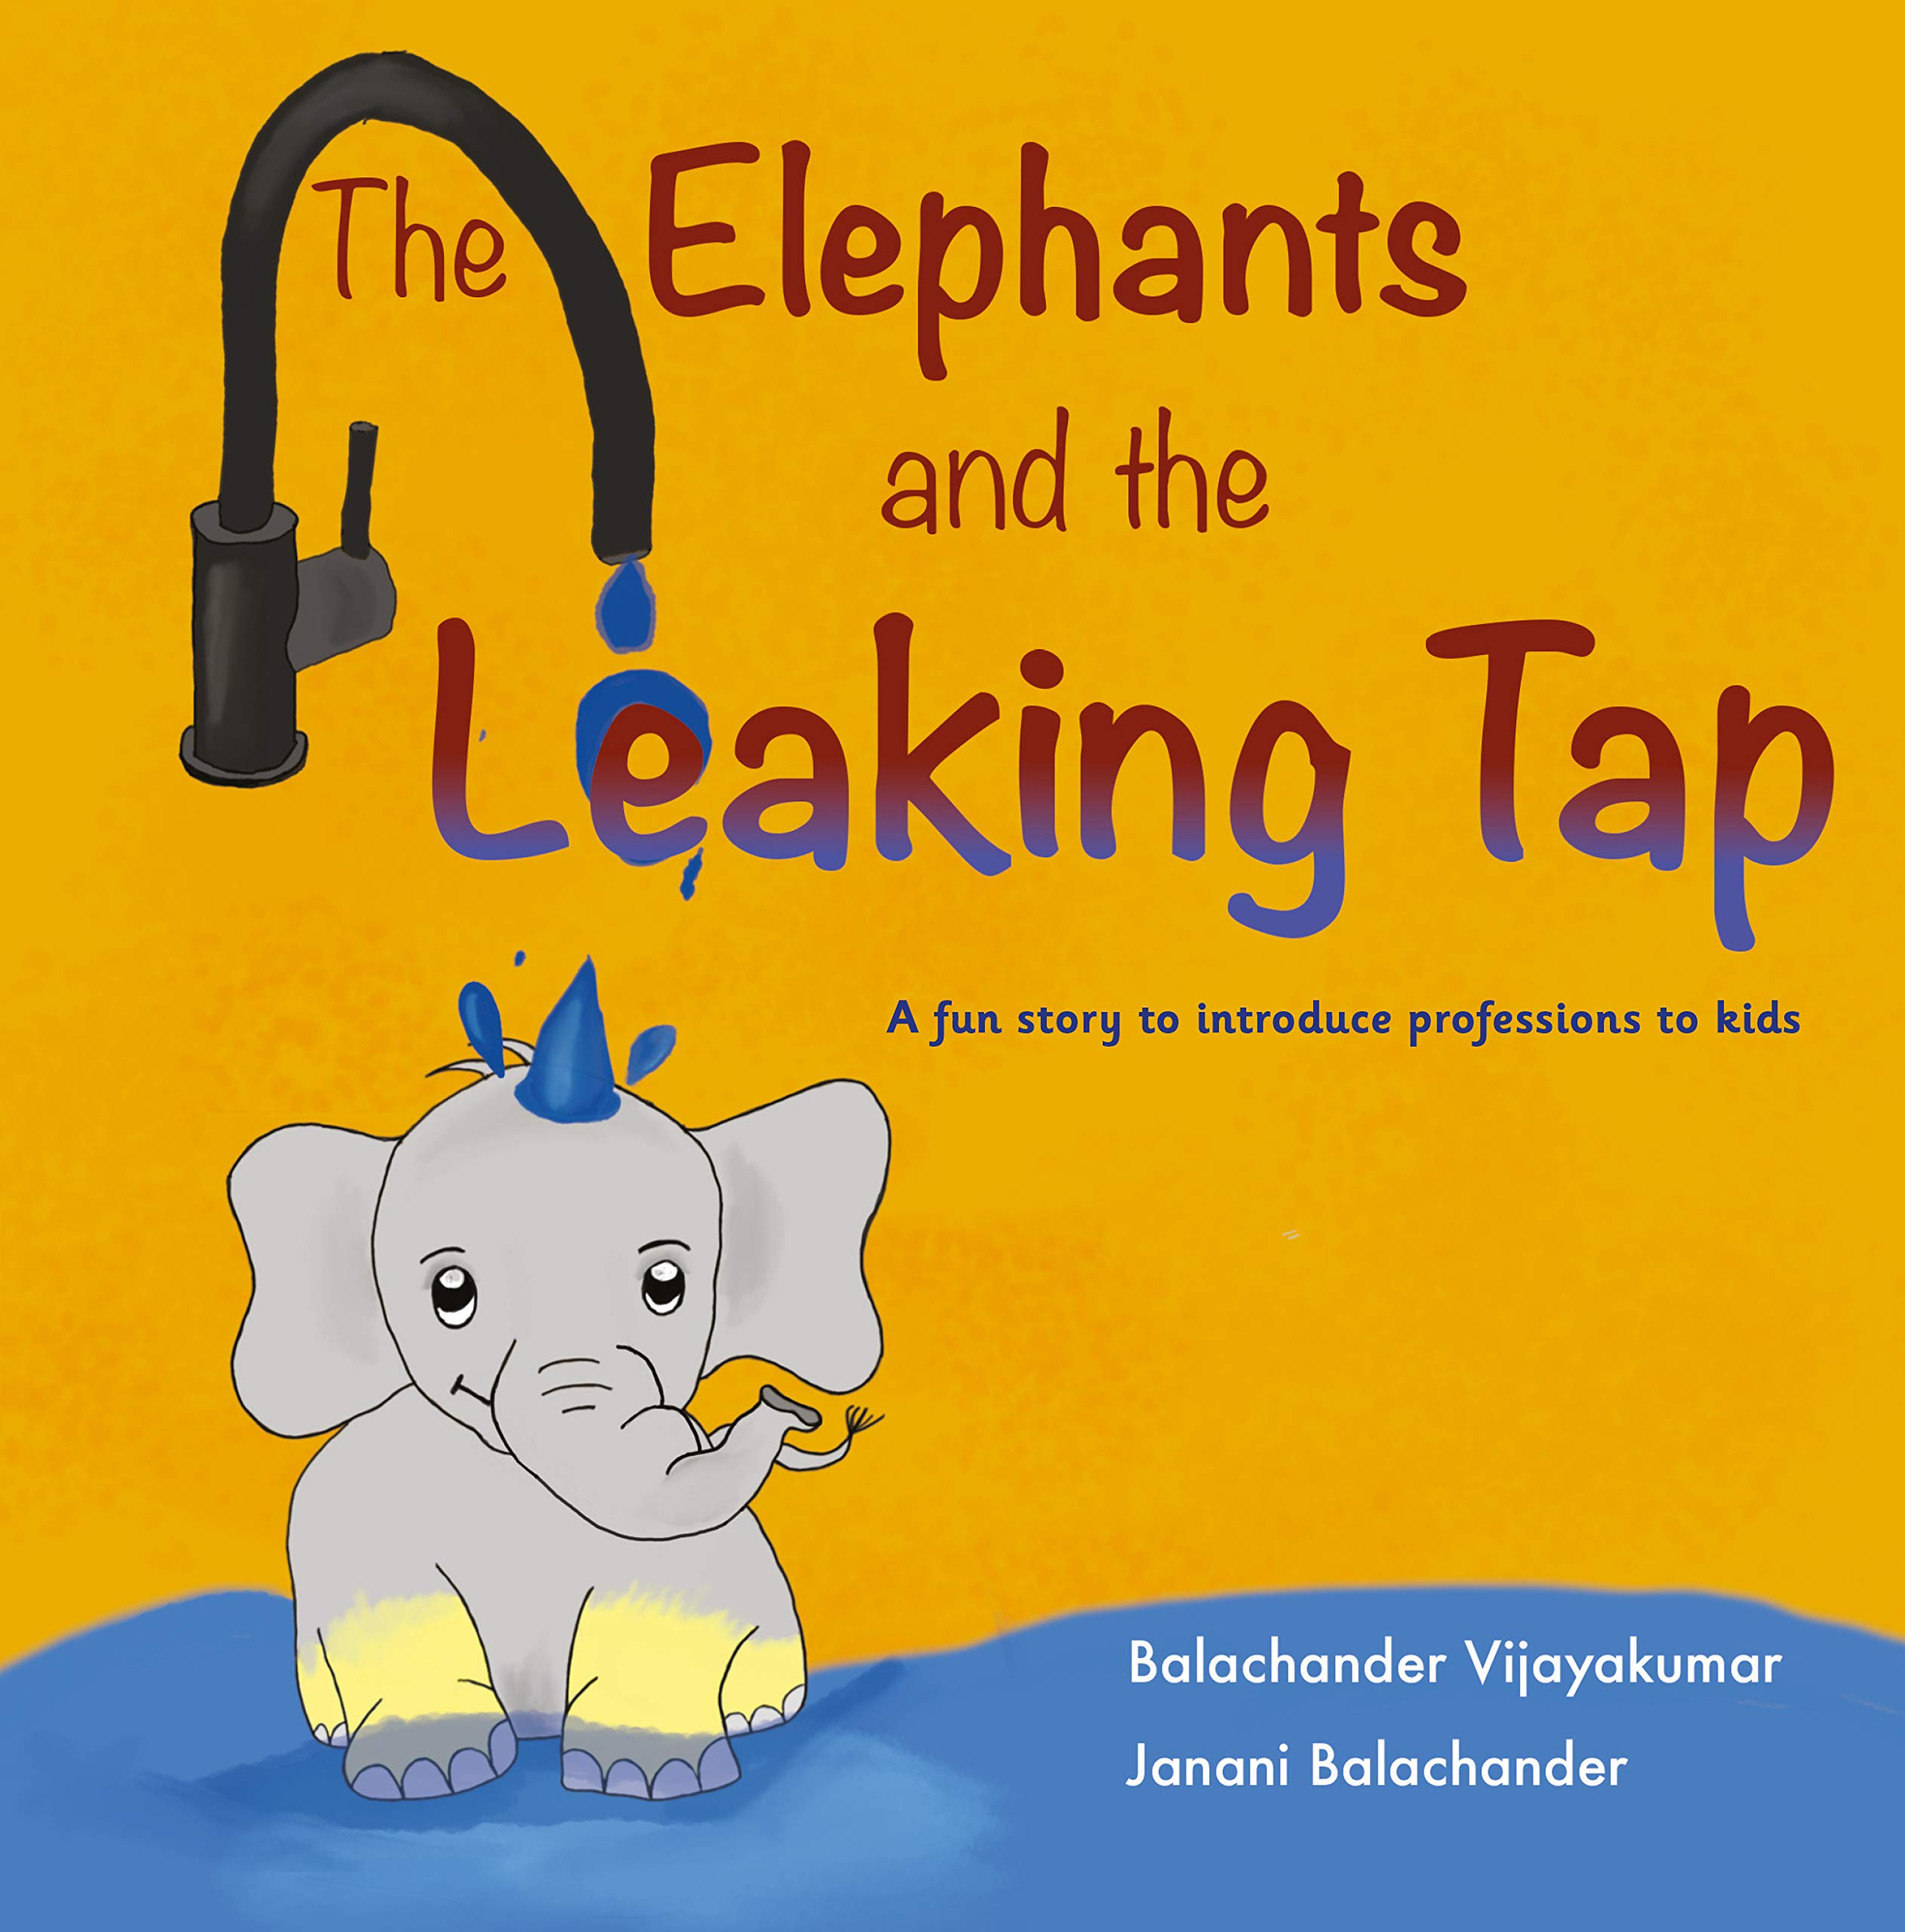 Elephants Leaking Tap introduce professions product image